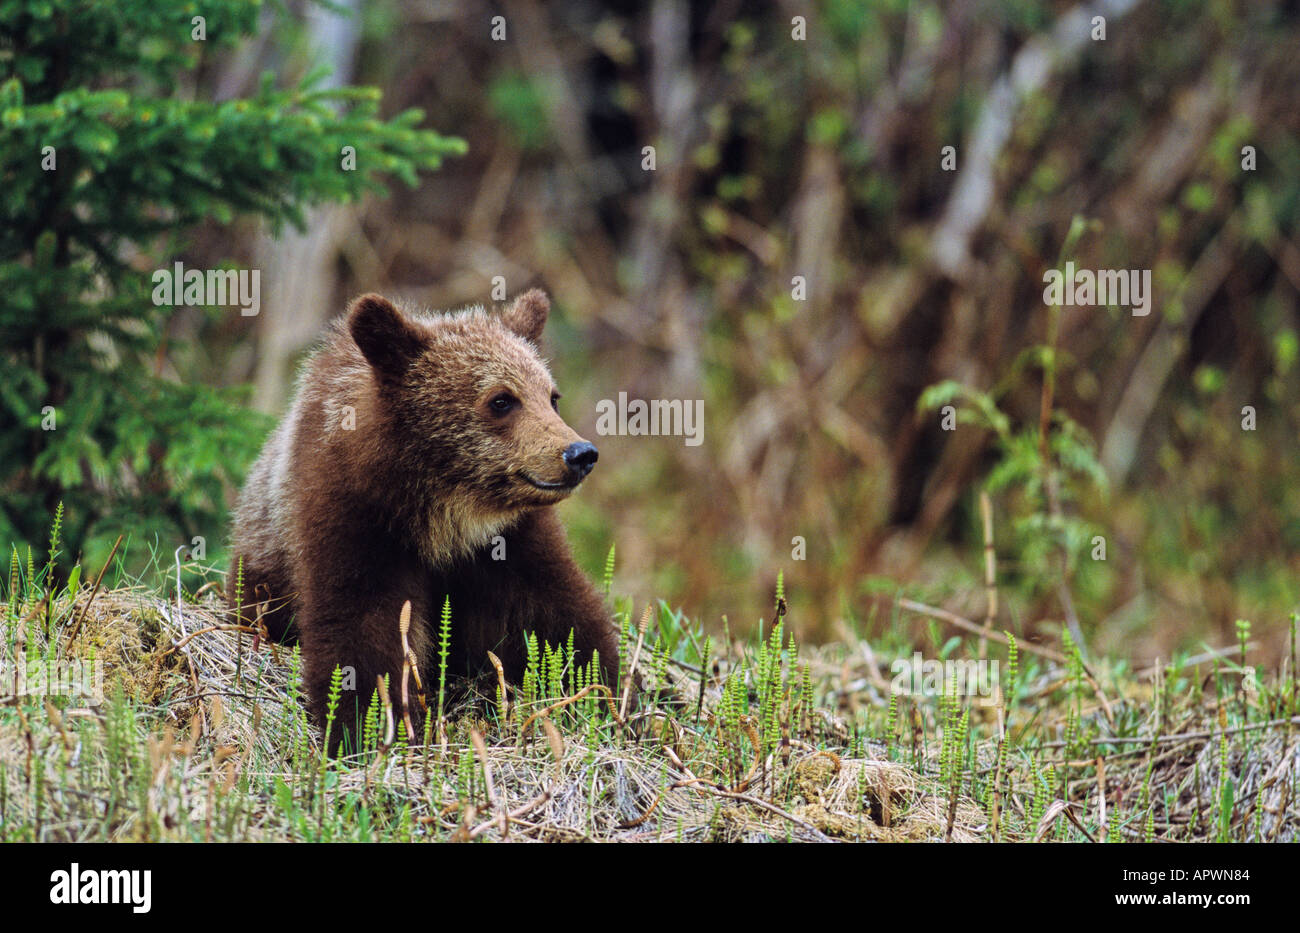 A cute grizzly bear cub sitting in a bed of horsetails Stock Photo